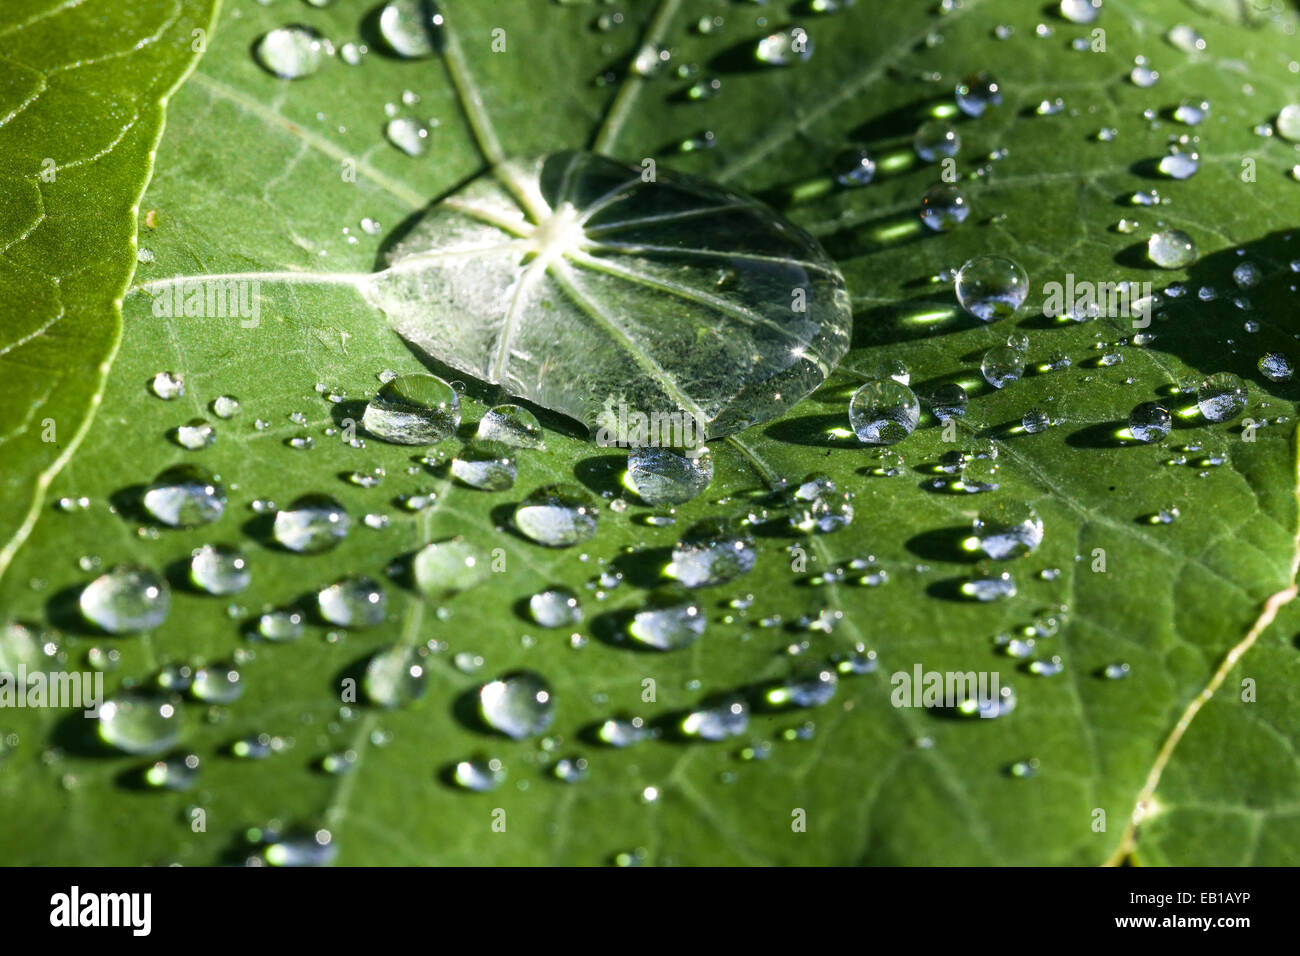 Dewdrops on a leave - Stock Image